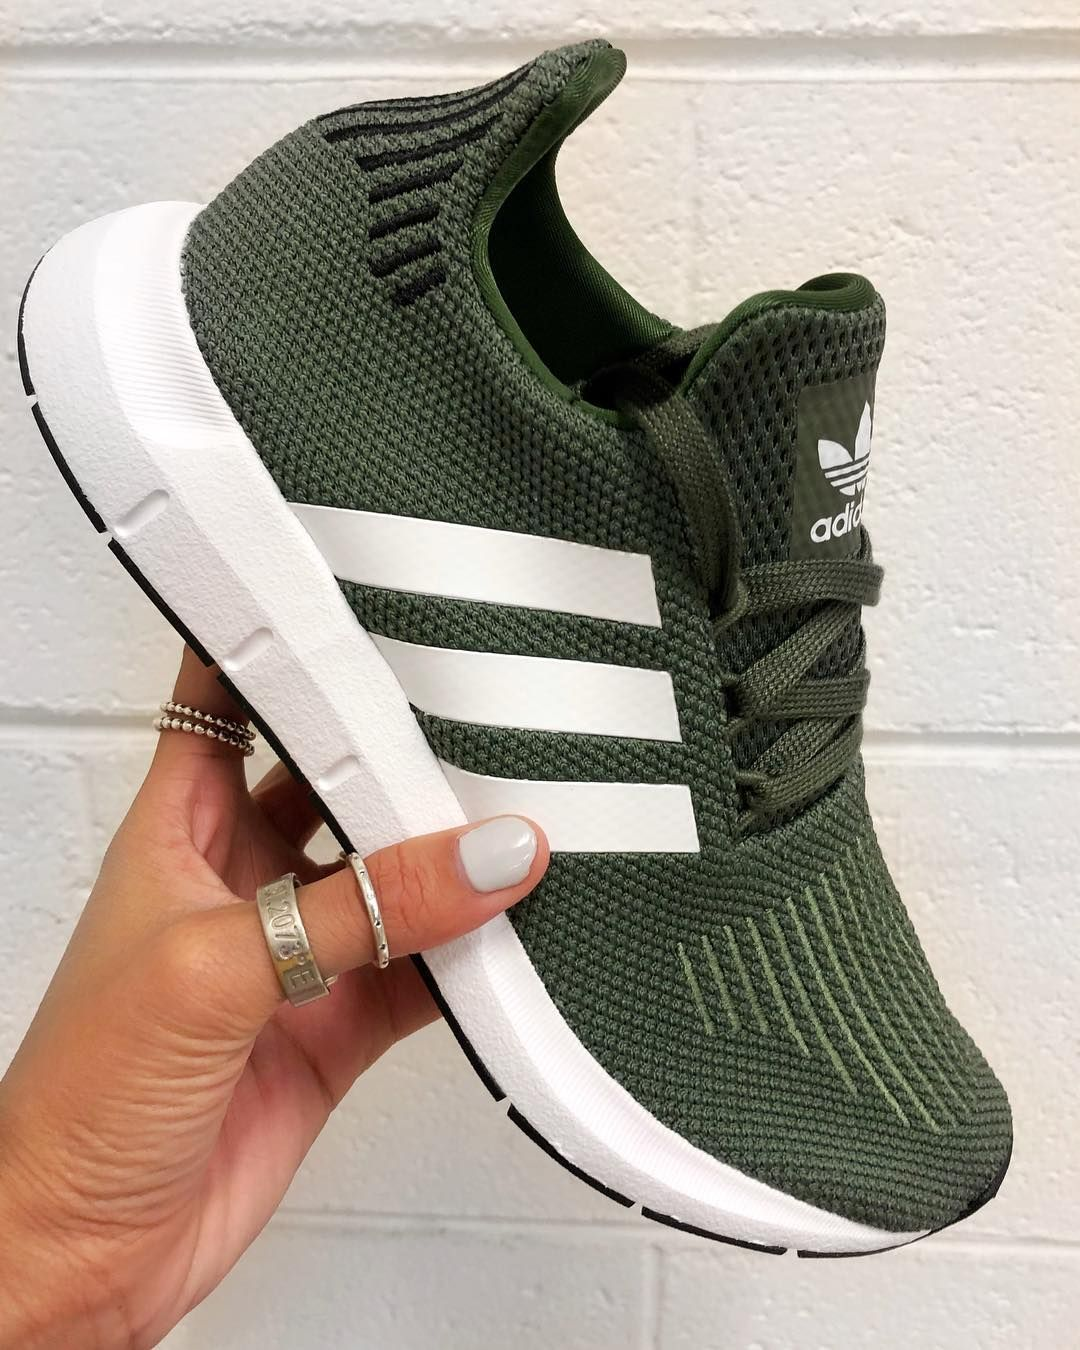 61ef7262d adidas Originals Swift Run – Green – AQ0866 - Shoes. Stylish adidas shoes  displayed by woman with jewellery.